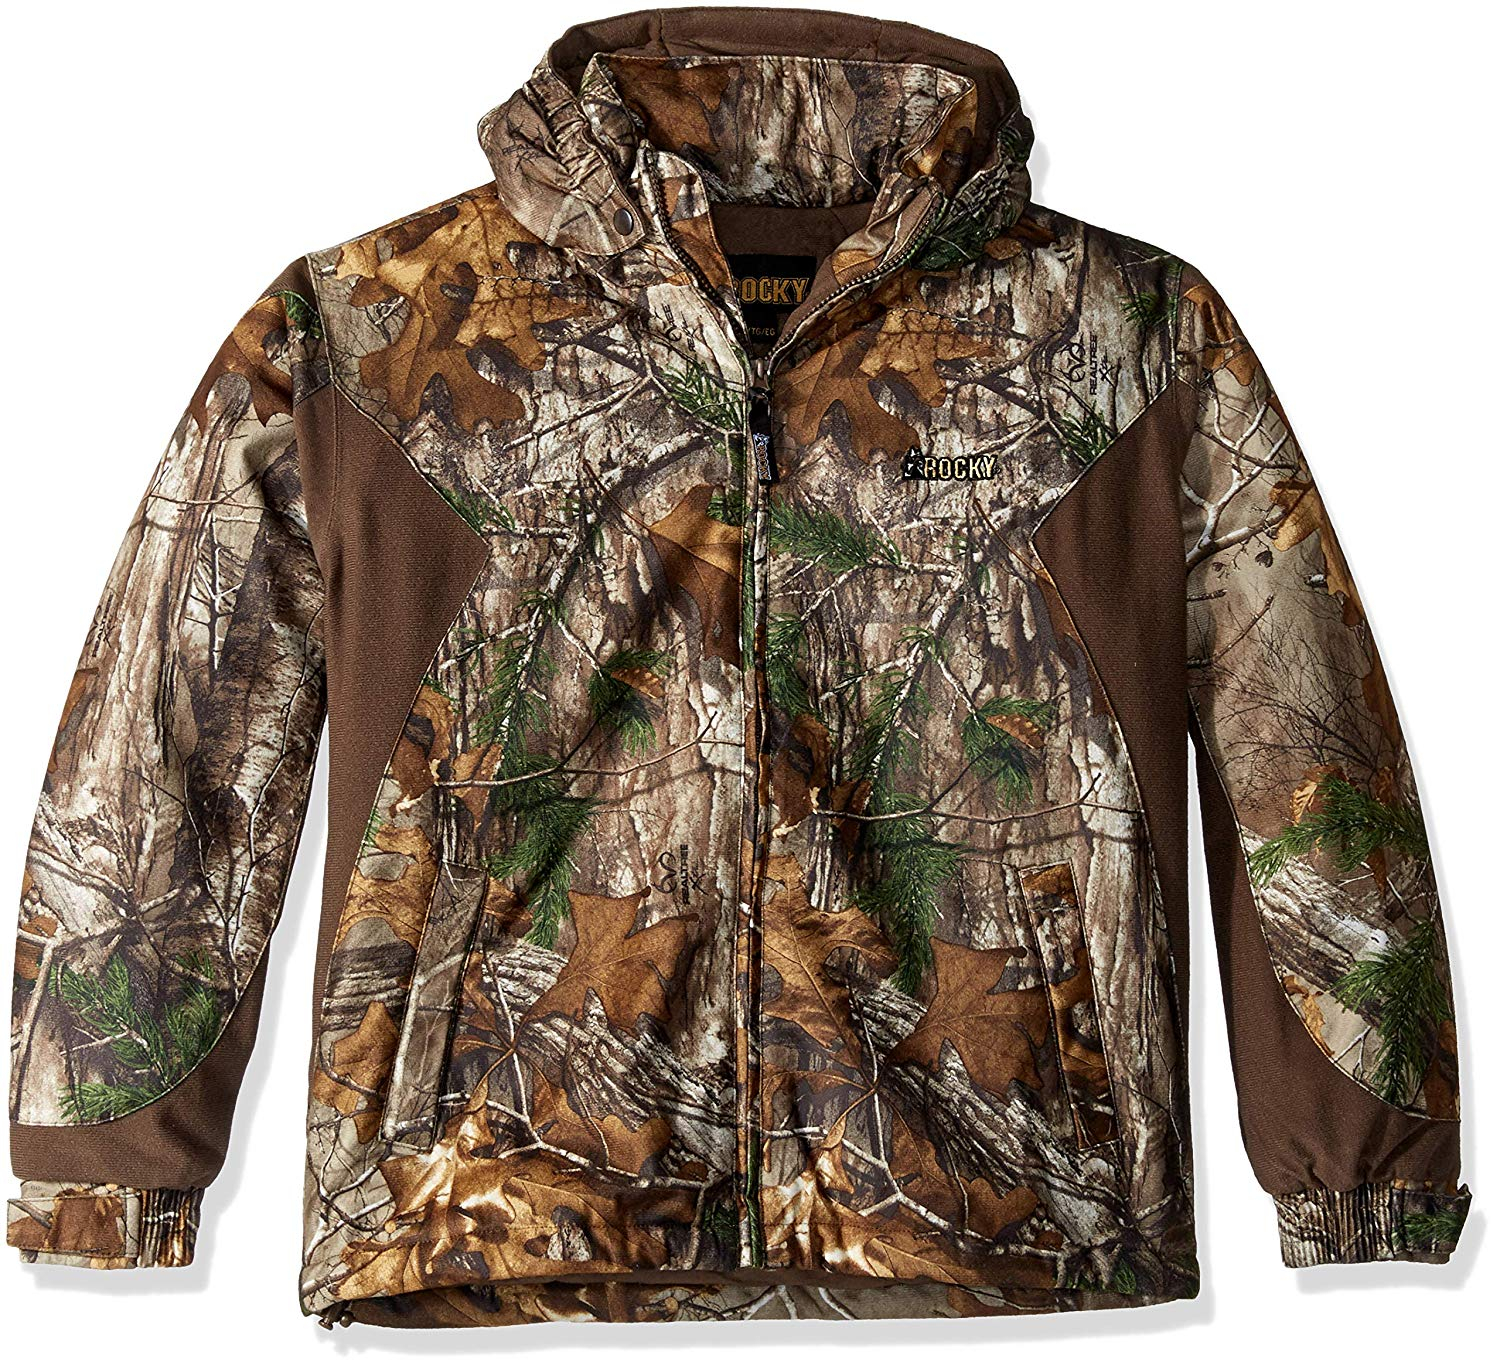 3aaa4d87b58f2 Rocky Junior Prohunter Waterproof Insulated Hooded Jacket, Realtree Extra  Camouflage, X-Large